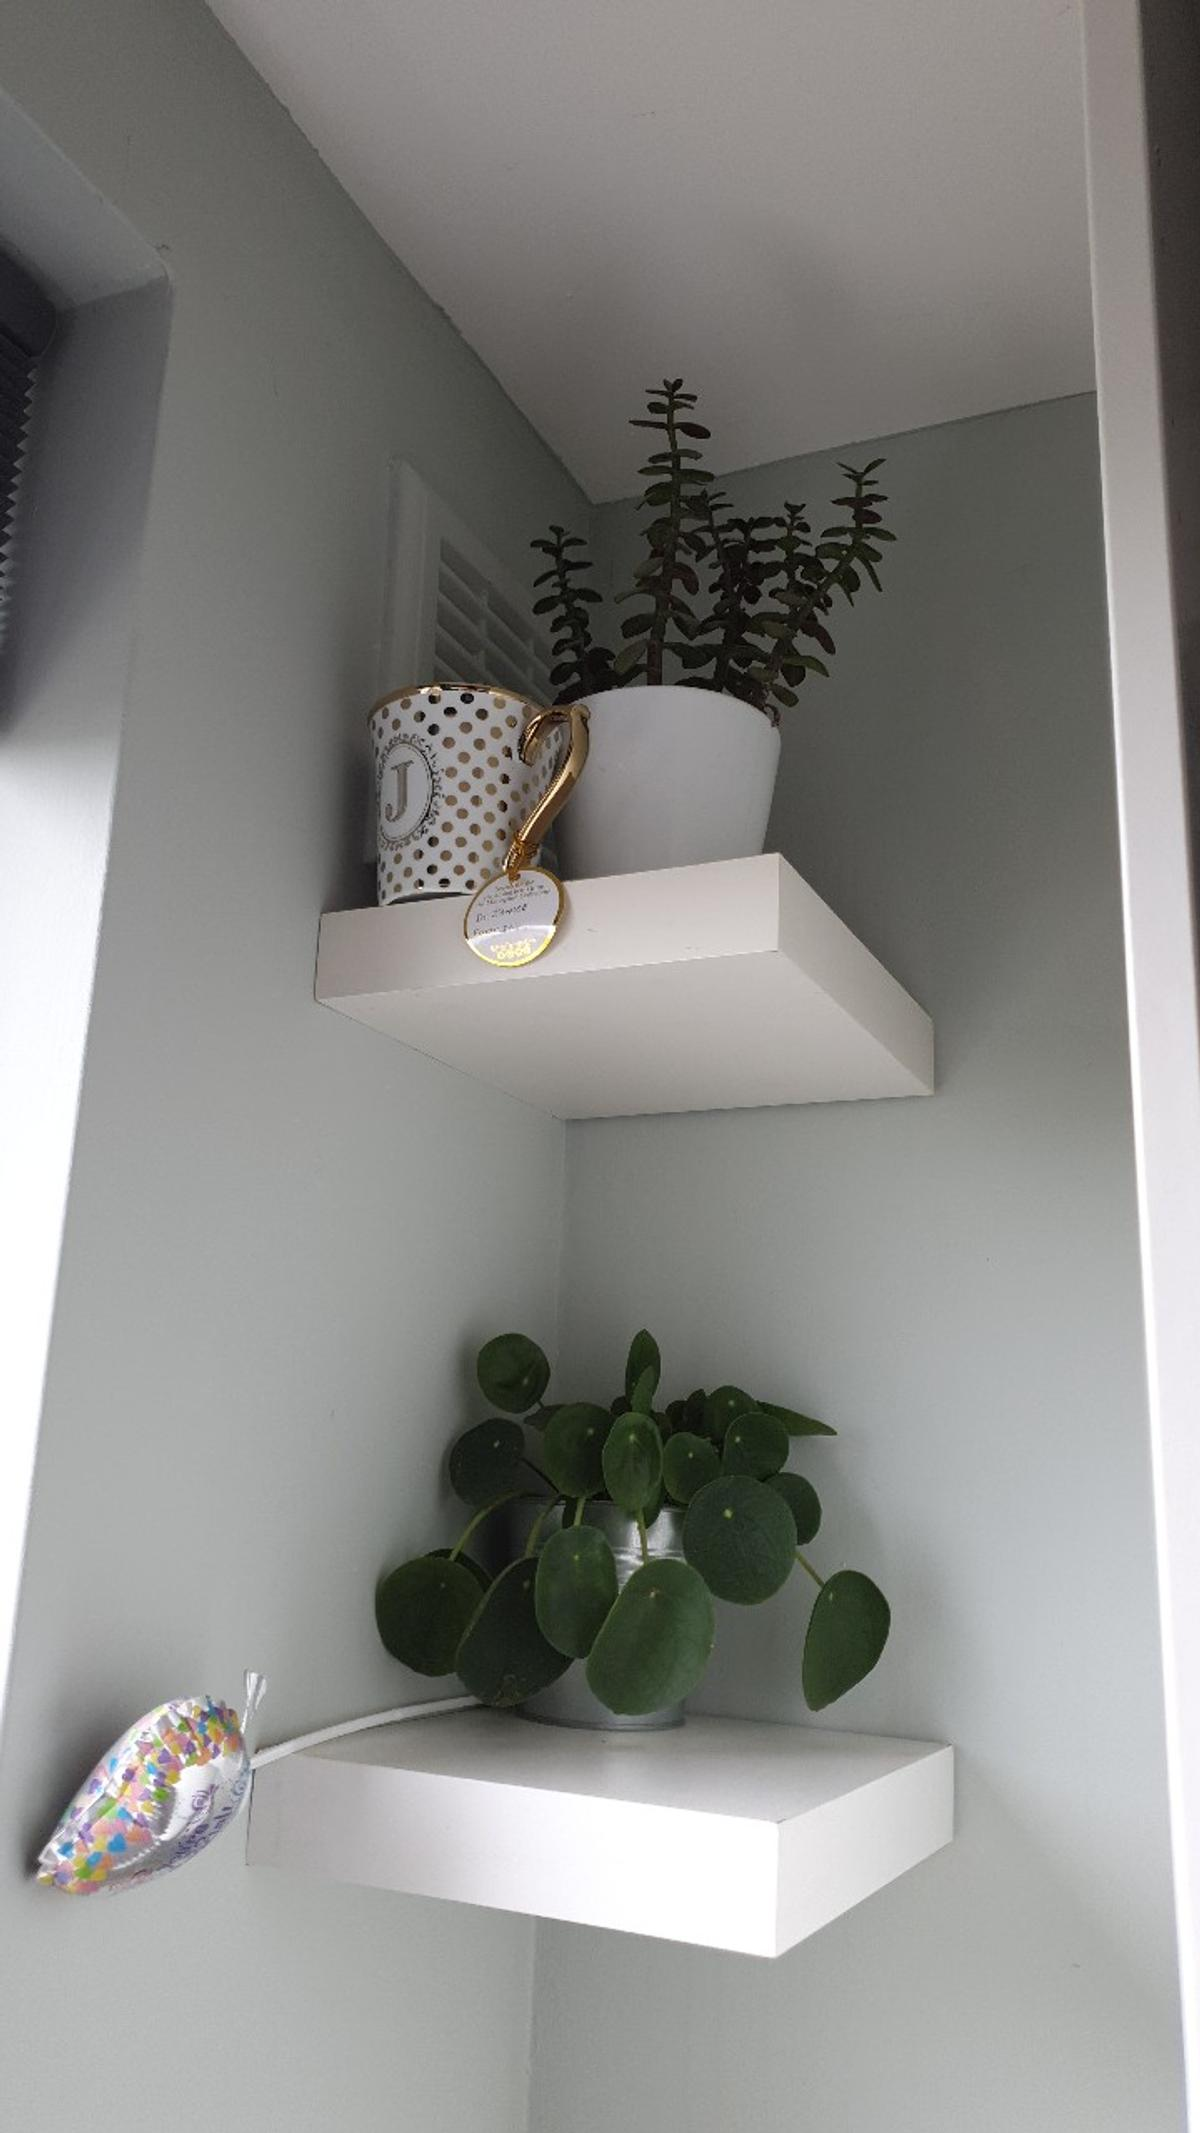 Ikea Lack Small Floating Shelves X5 In Se18 Greenwich For 15 00 For Sale Shpock